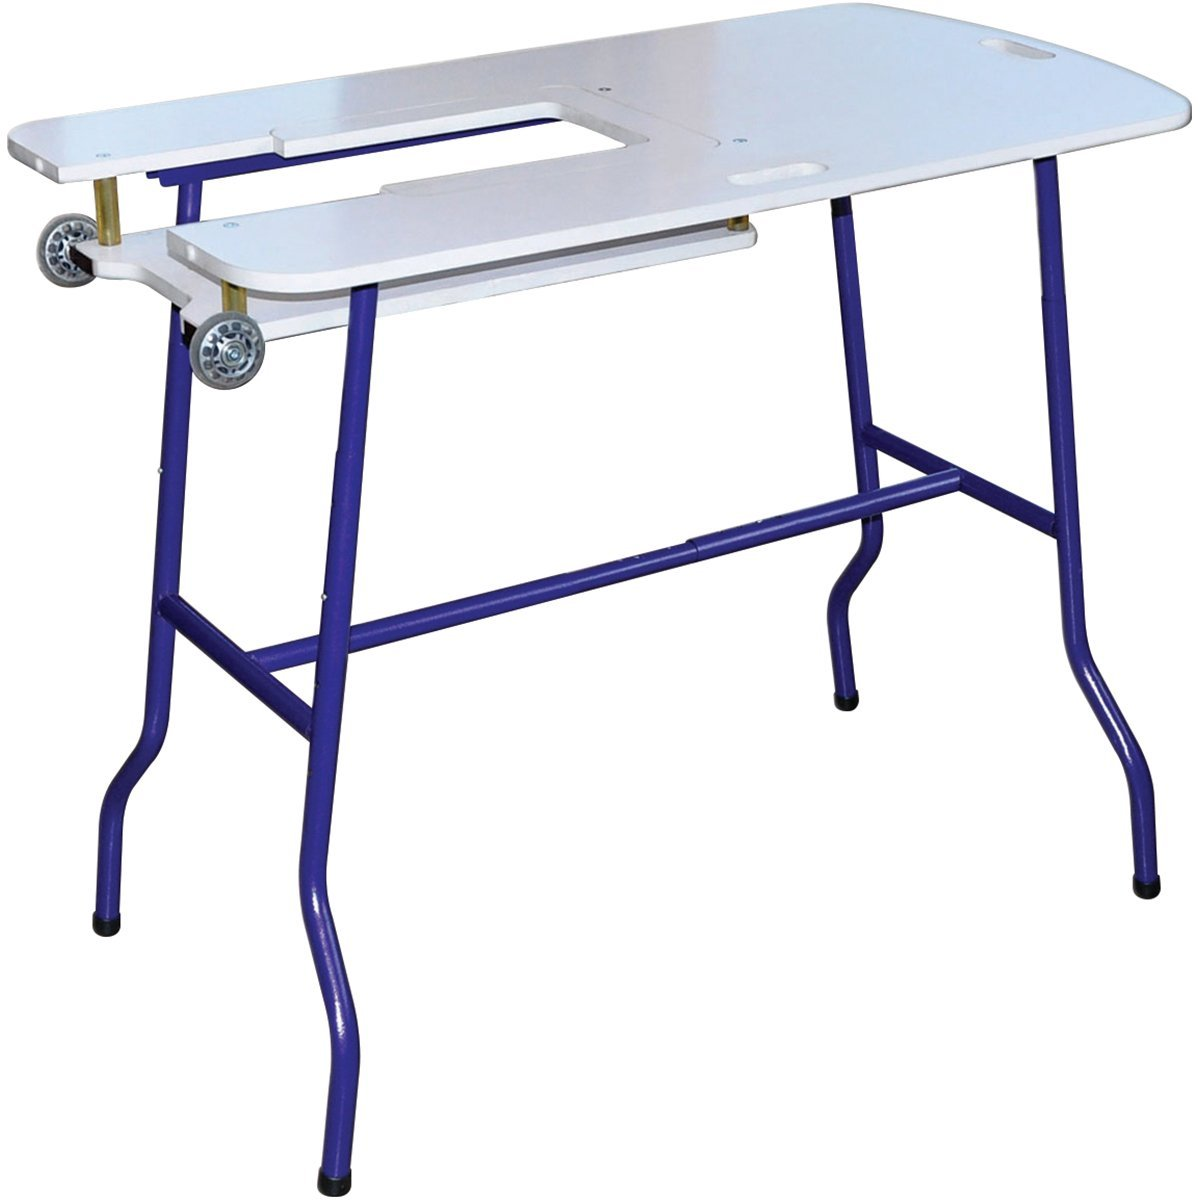 Sullivans Sew Go Amendable Height Foldable Sewing Table